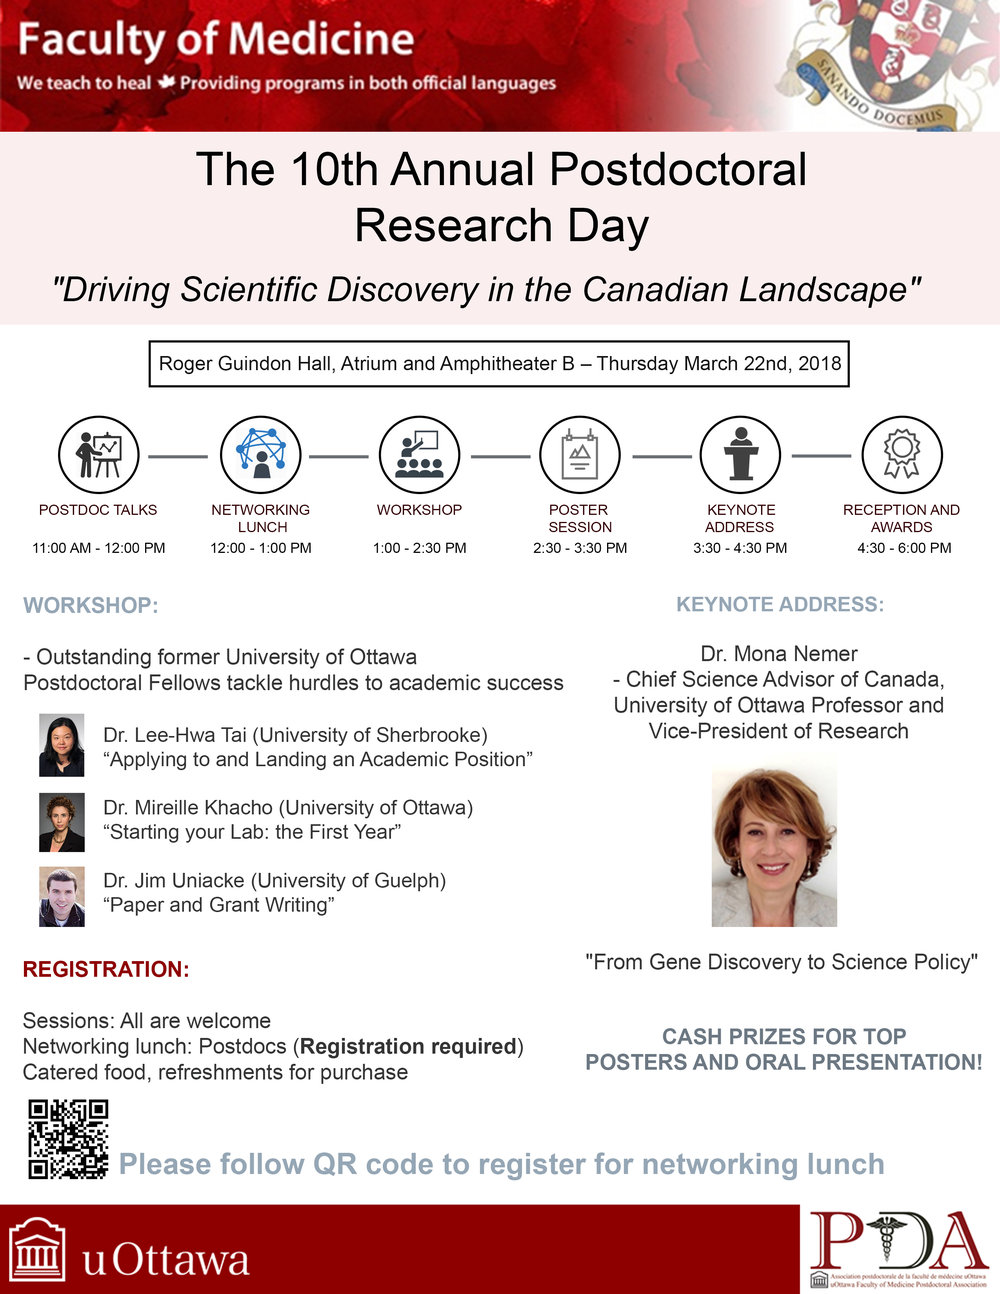 The 10th Annual Postdoctoral Research Day 2018 was a big success! -